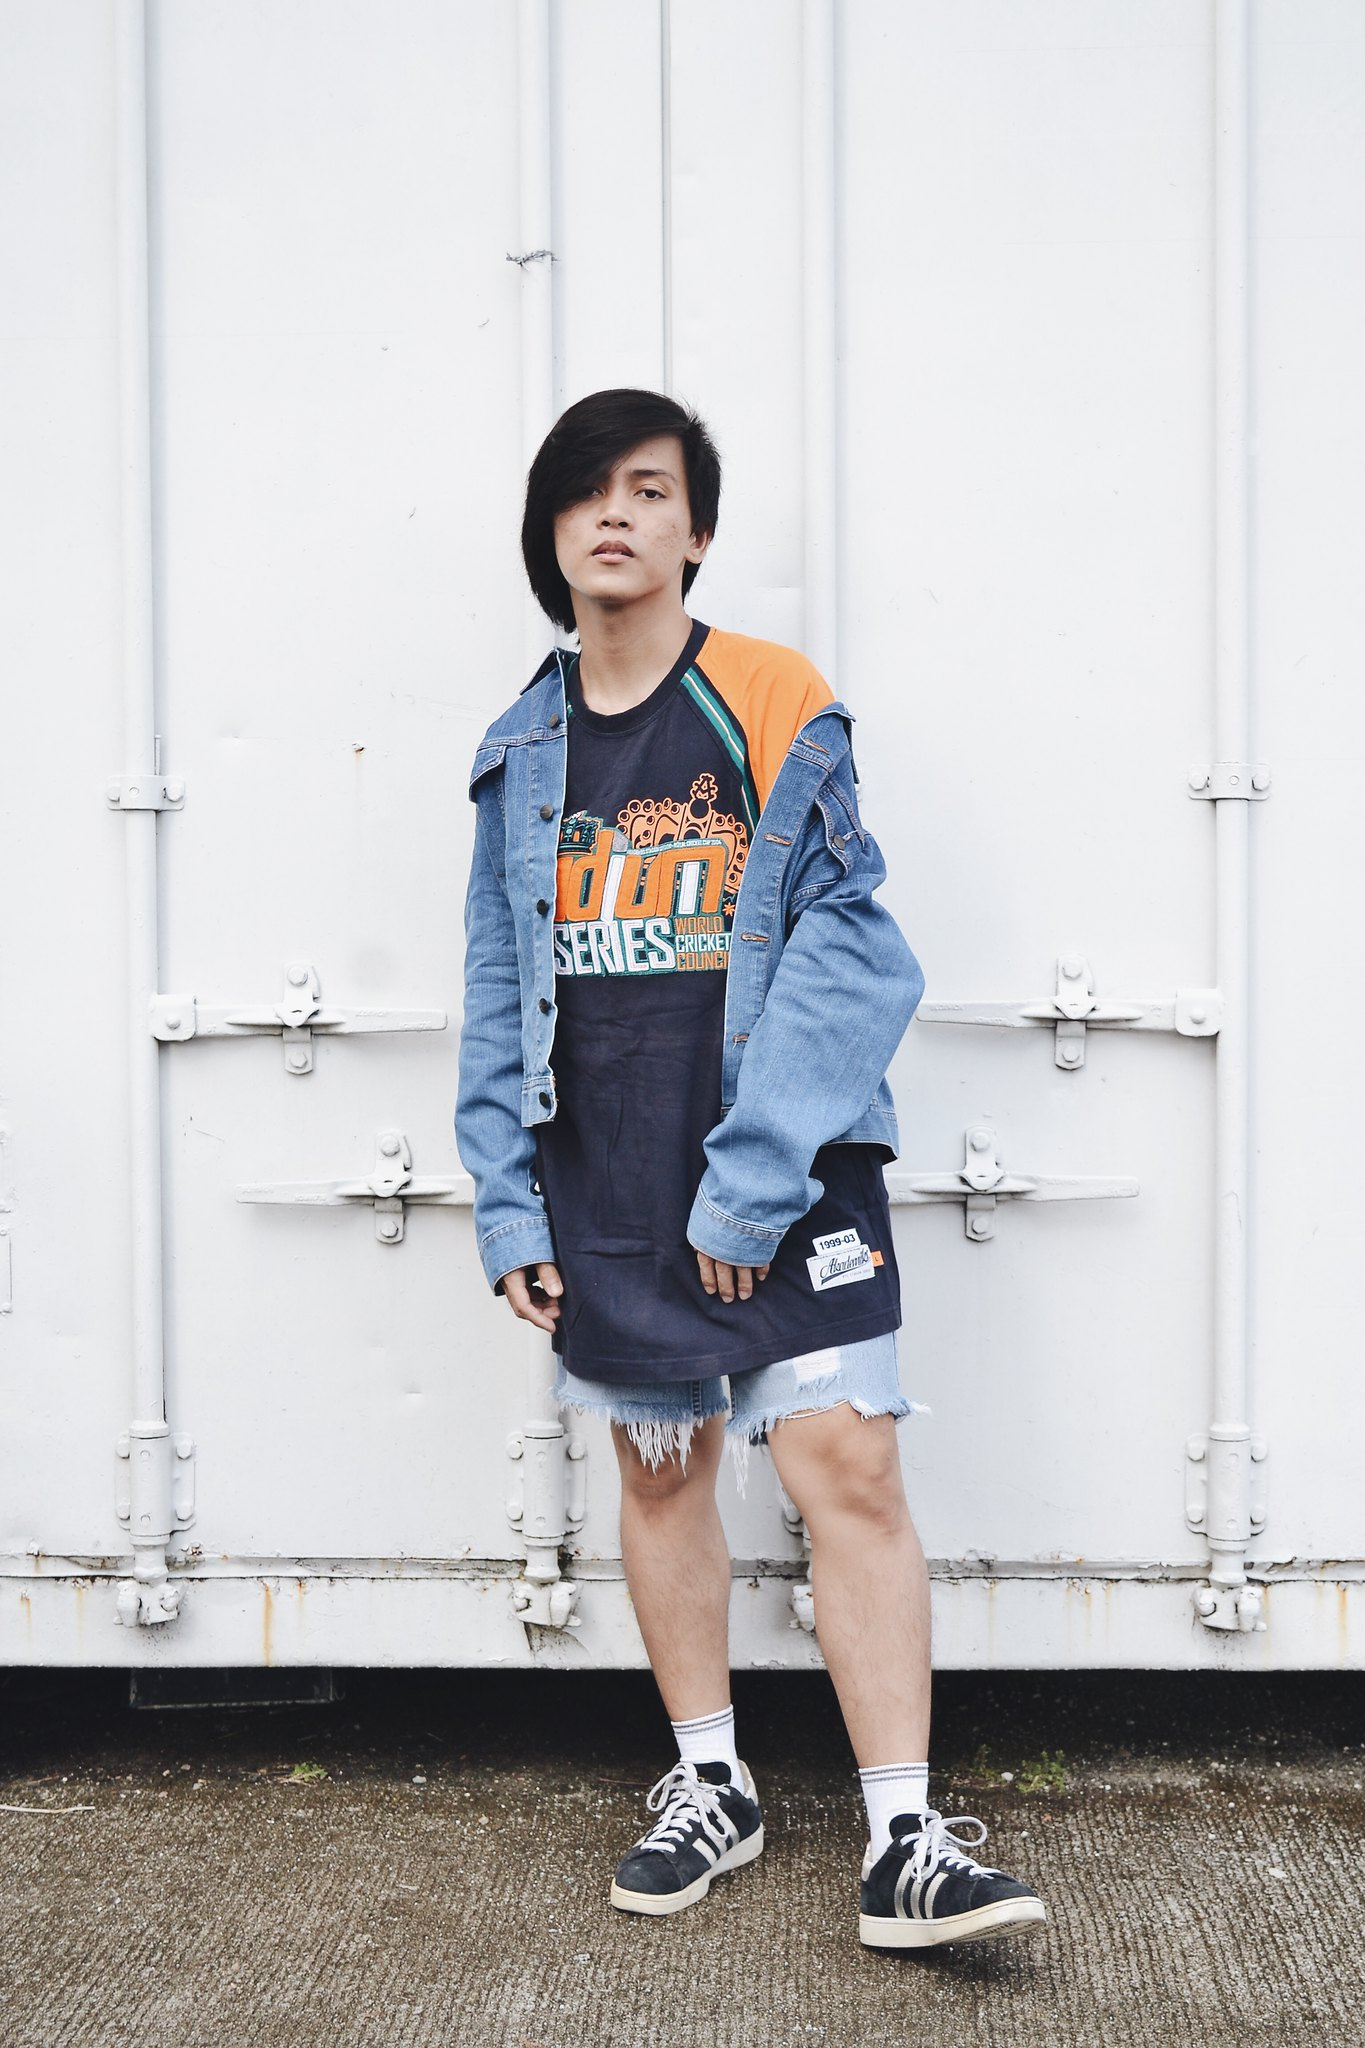 Lifestyle & Fashion Blogger, Mark Ontoy